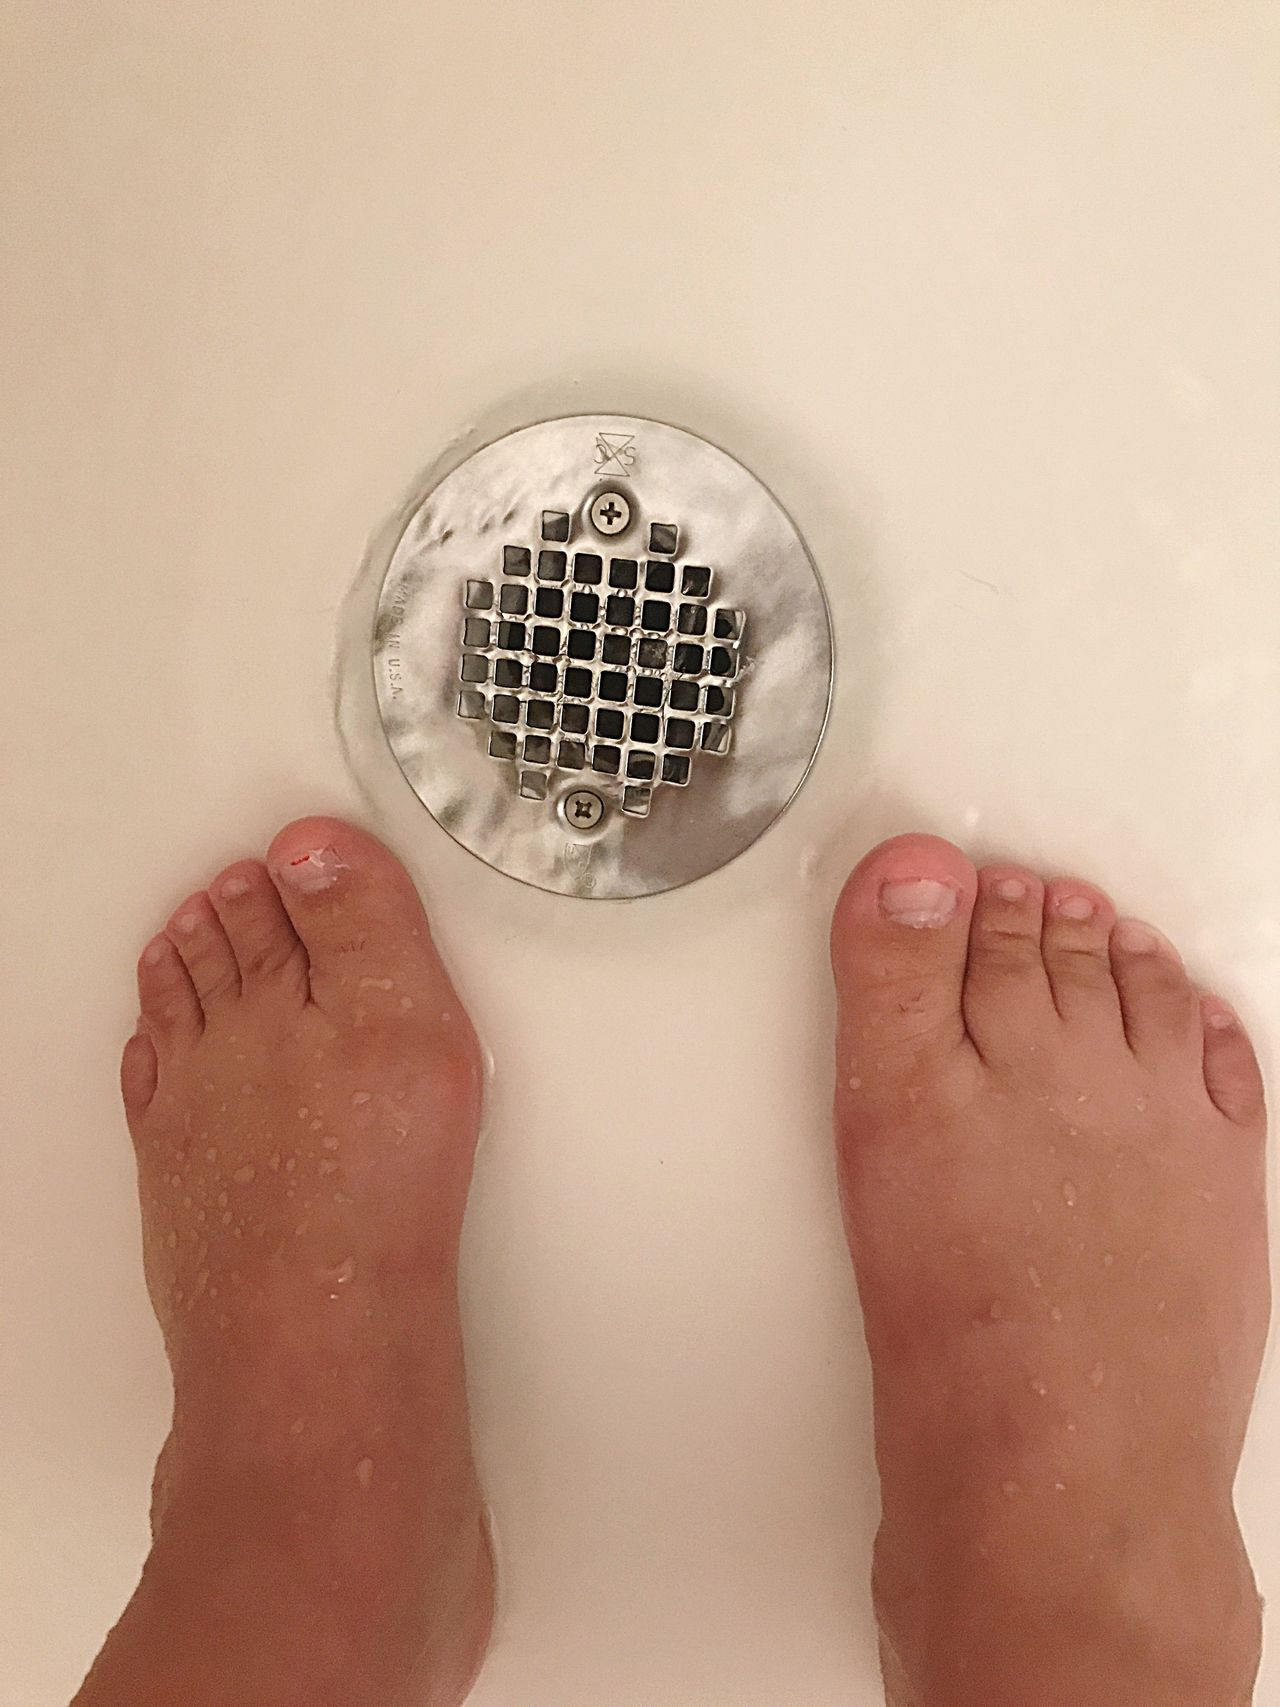 Shower Toes Toesies Ugly Feet Cute Feet Right Foot Left Foot Foot Feet Shower Woman Barefoot Women Adult Water